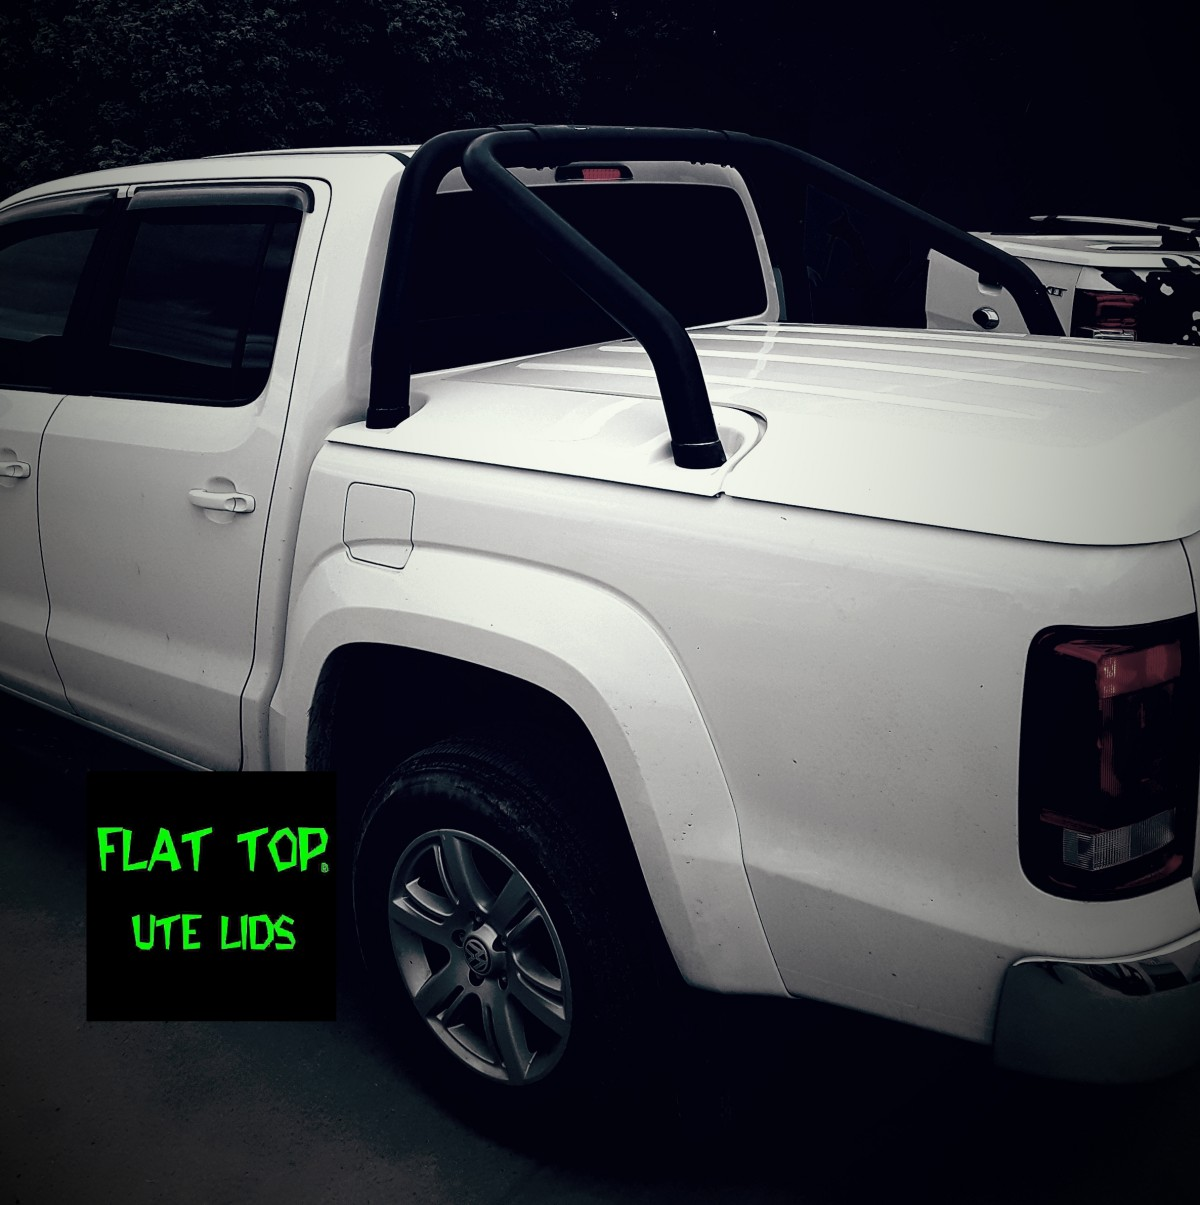 volkswagen amarok dual cab 3 piece ute lid auto remote locking volkswagen shop by make. Black Bedroom Furniture Sets. Home Design Ideas